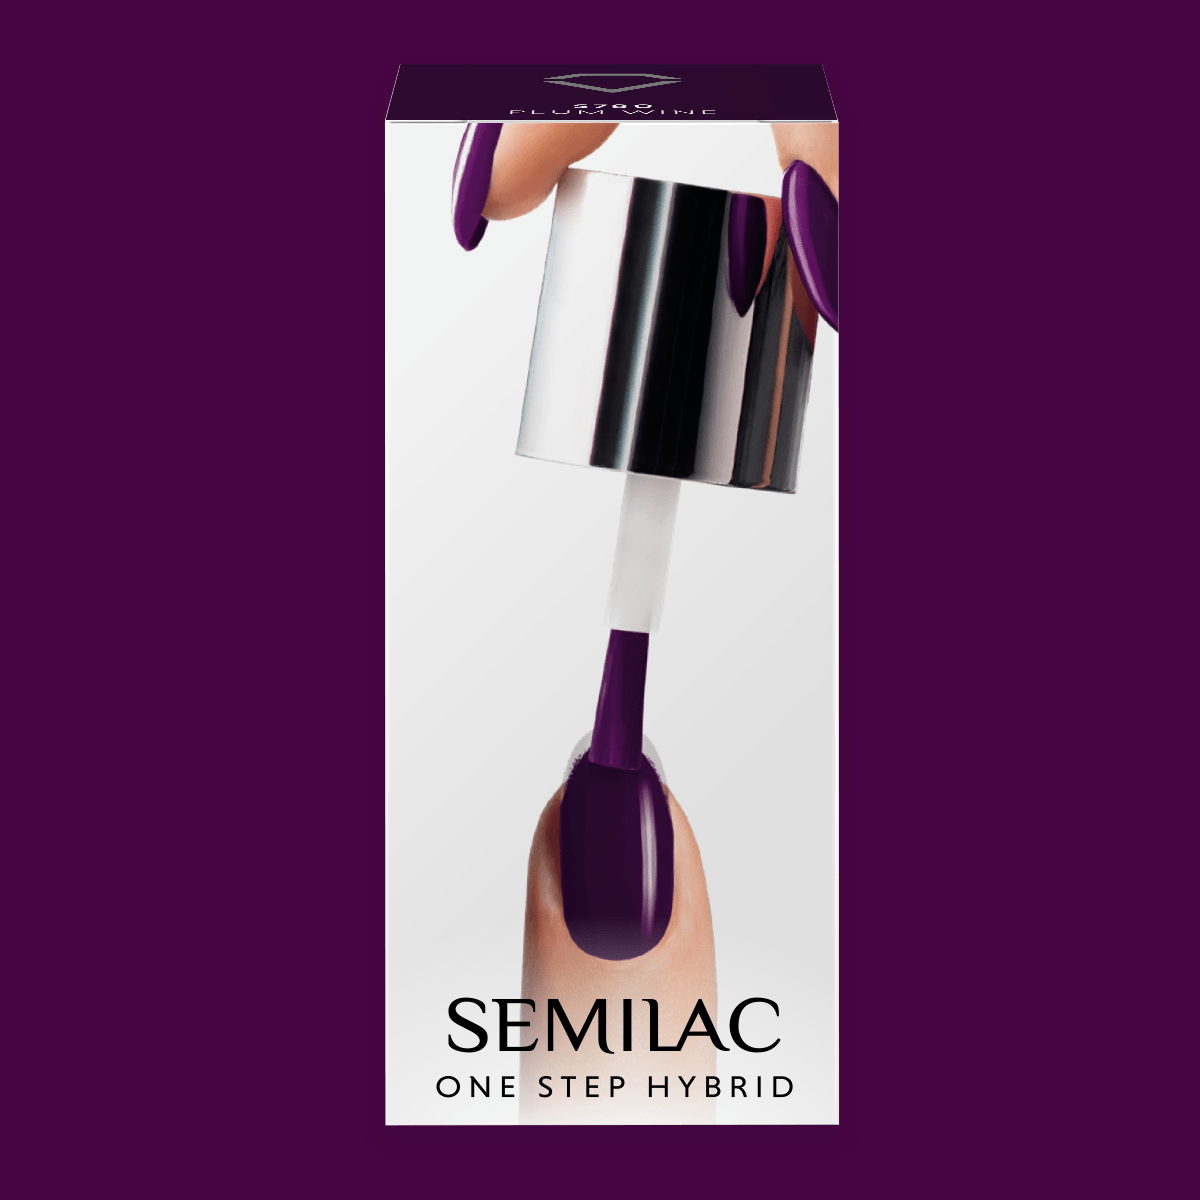 Semilac One Step Hybrid Gel Polish 5ml 780 Plum Wine - FlowertushBeauty